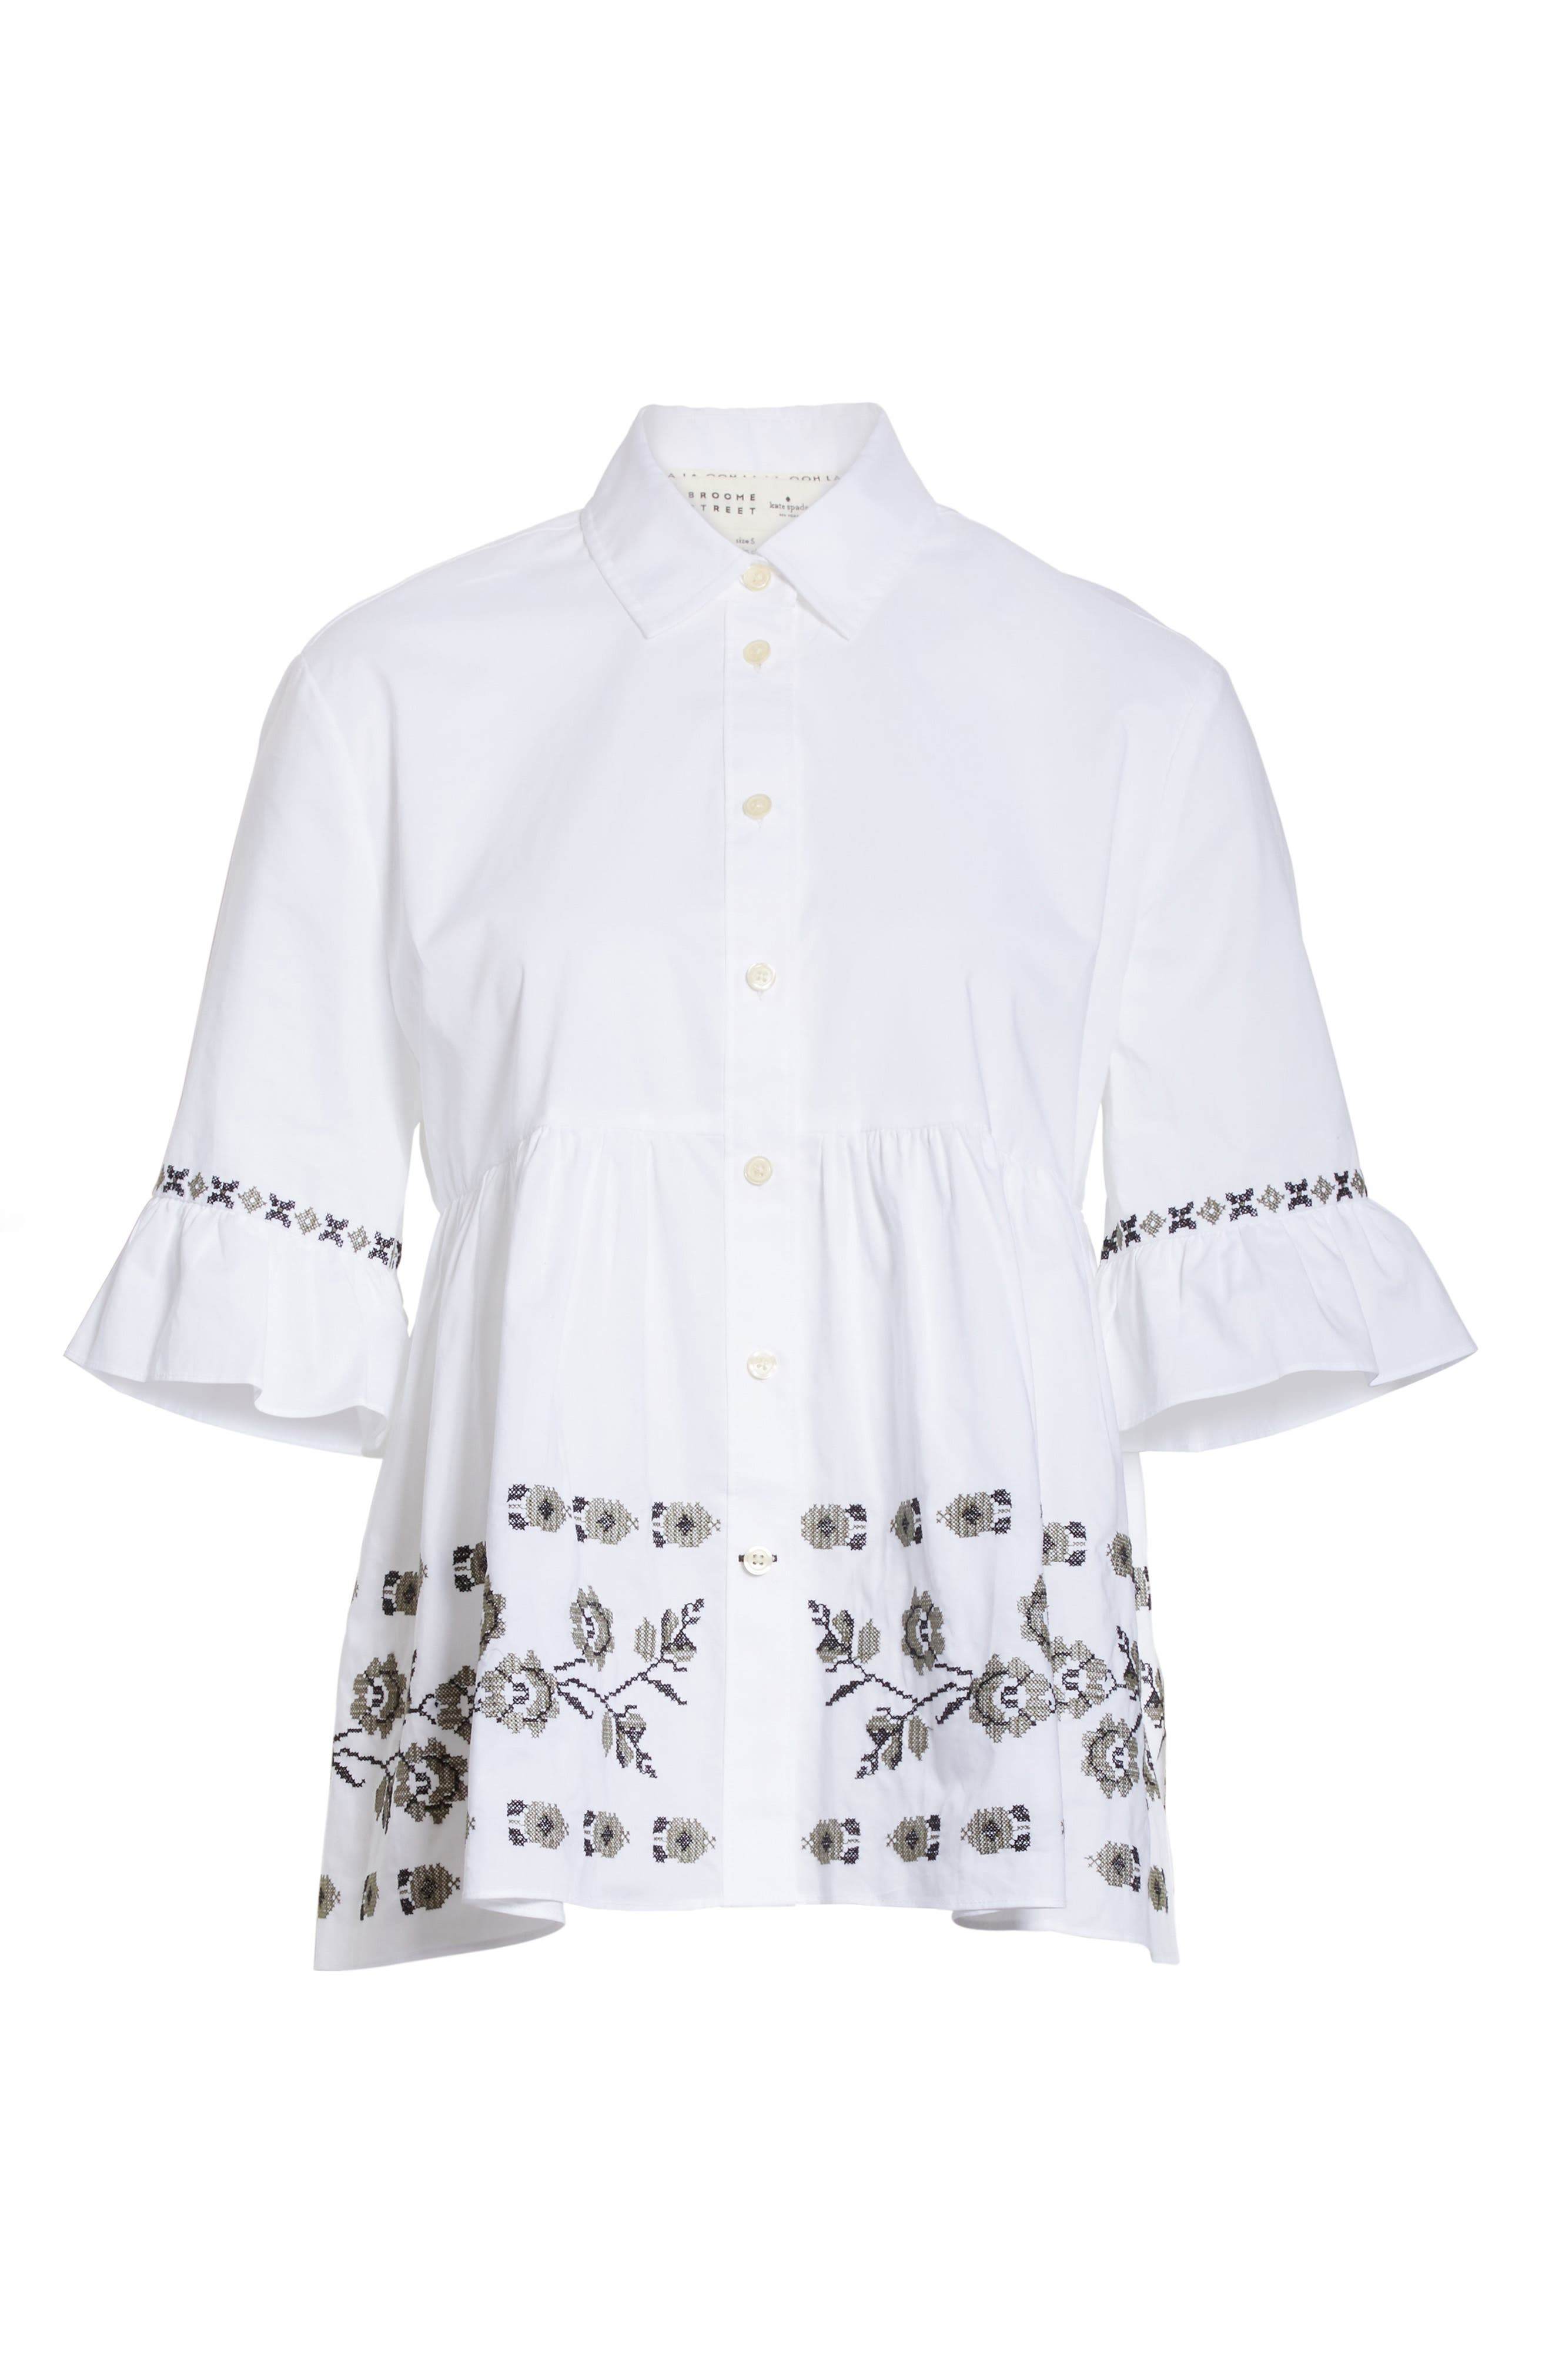 embroidered ruffle shirt,                             Alternate thumbnail 6, color,                             107